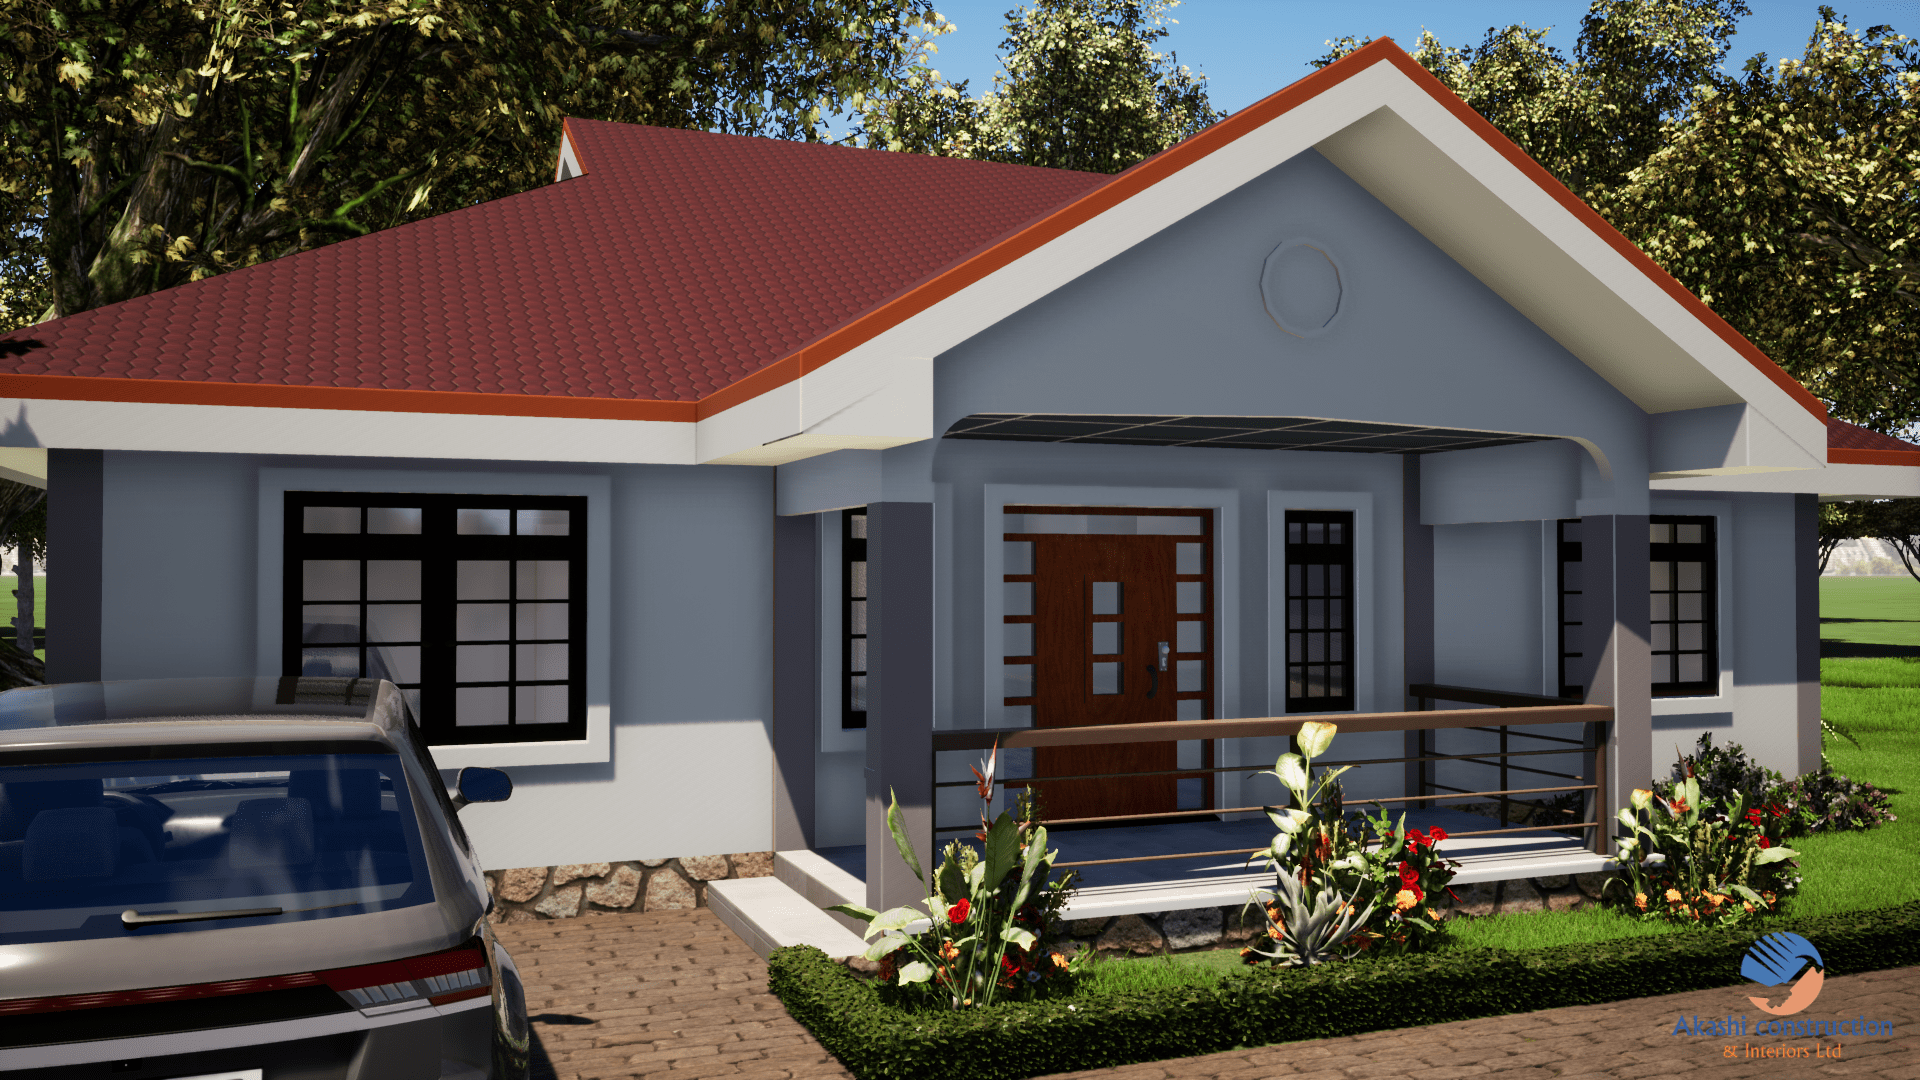 3 Bedroom House Plan With Master Ensuite Muthurwa Com In 2020 House Plan Gallery Architectural House Plans Bedroom House Plans